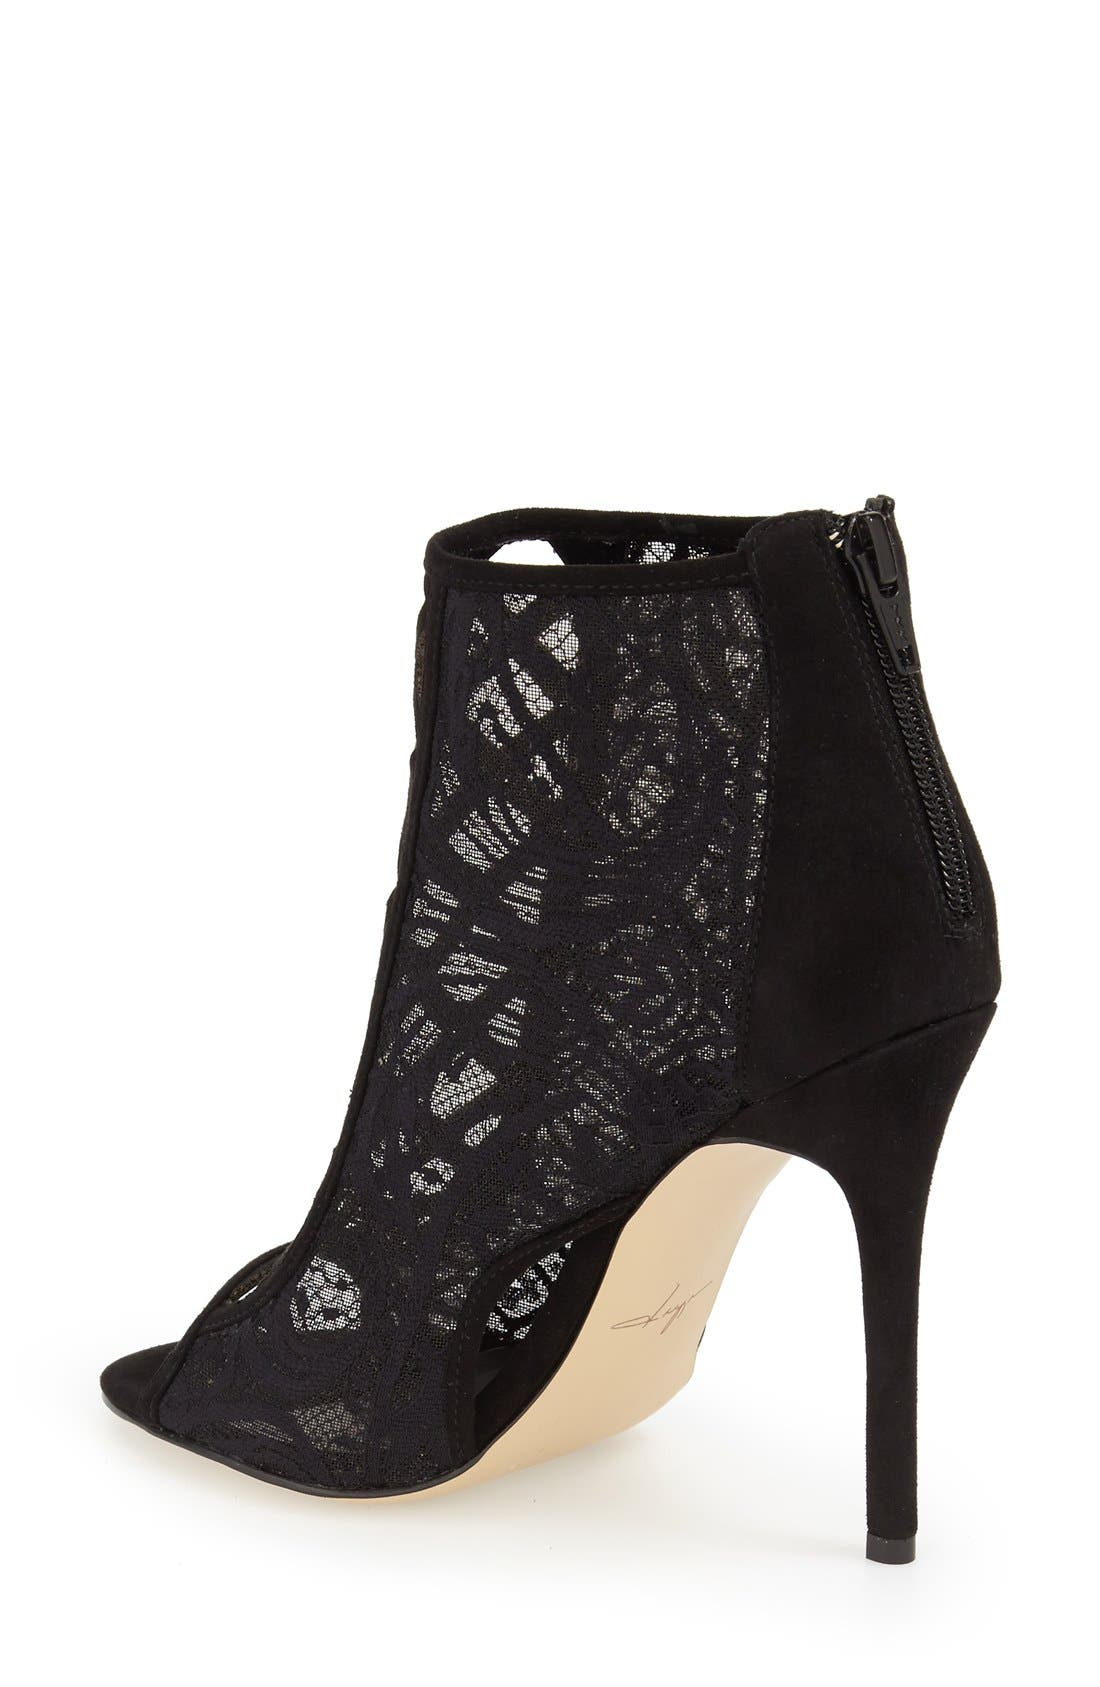 DAYA, by Zendaya 'Angus' Lace Open Toe Bootie, Alternate thumbnail 2, color, 008